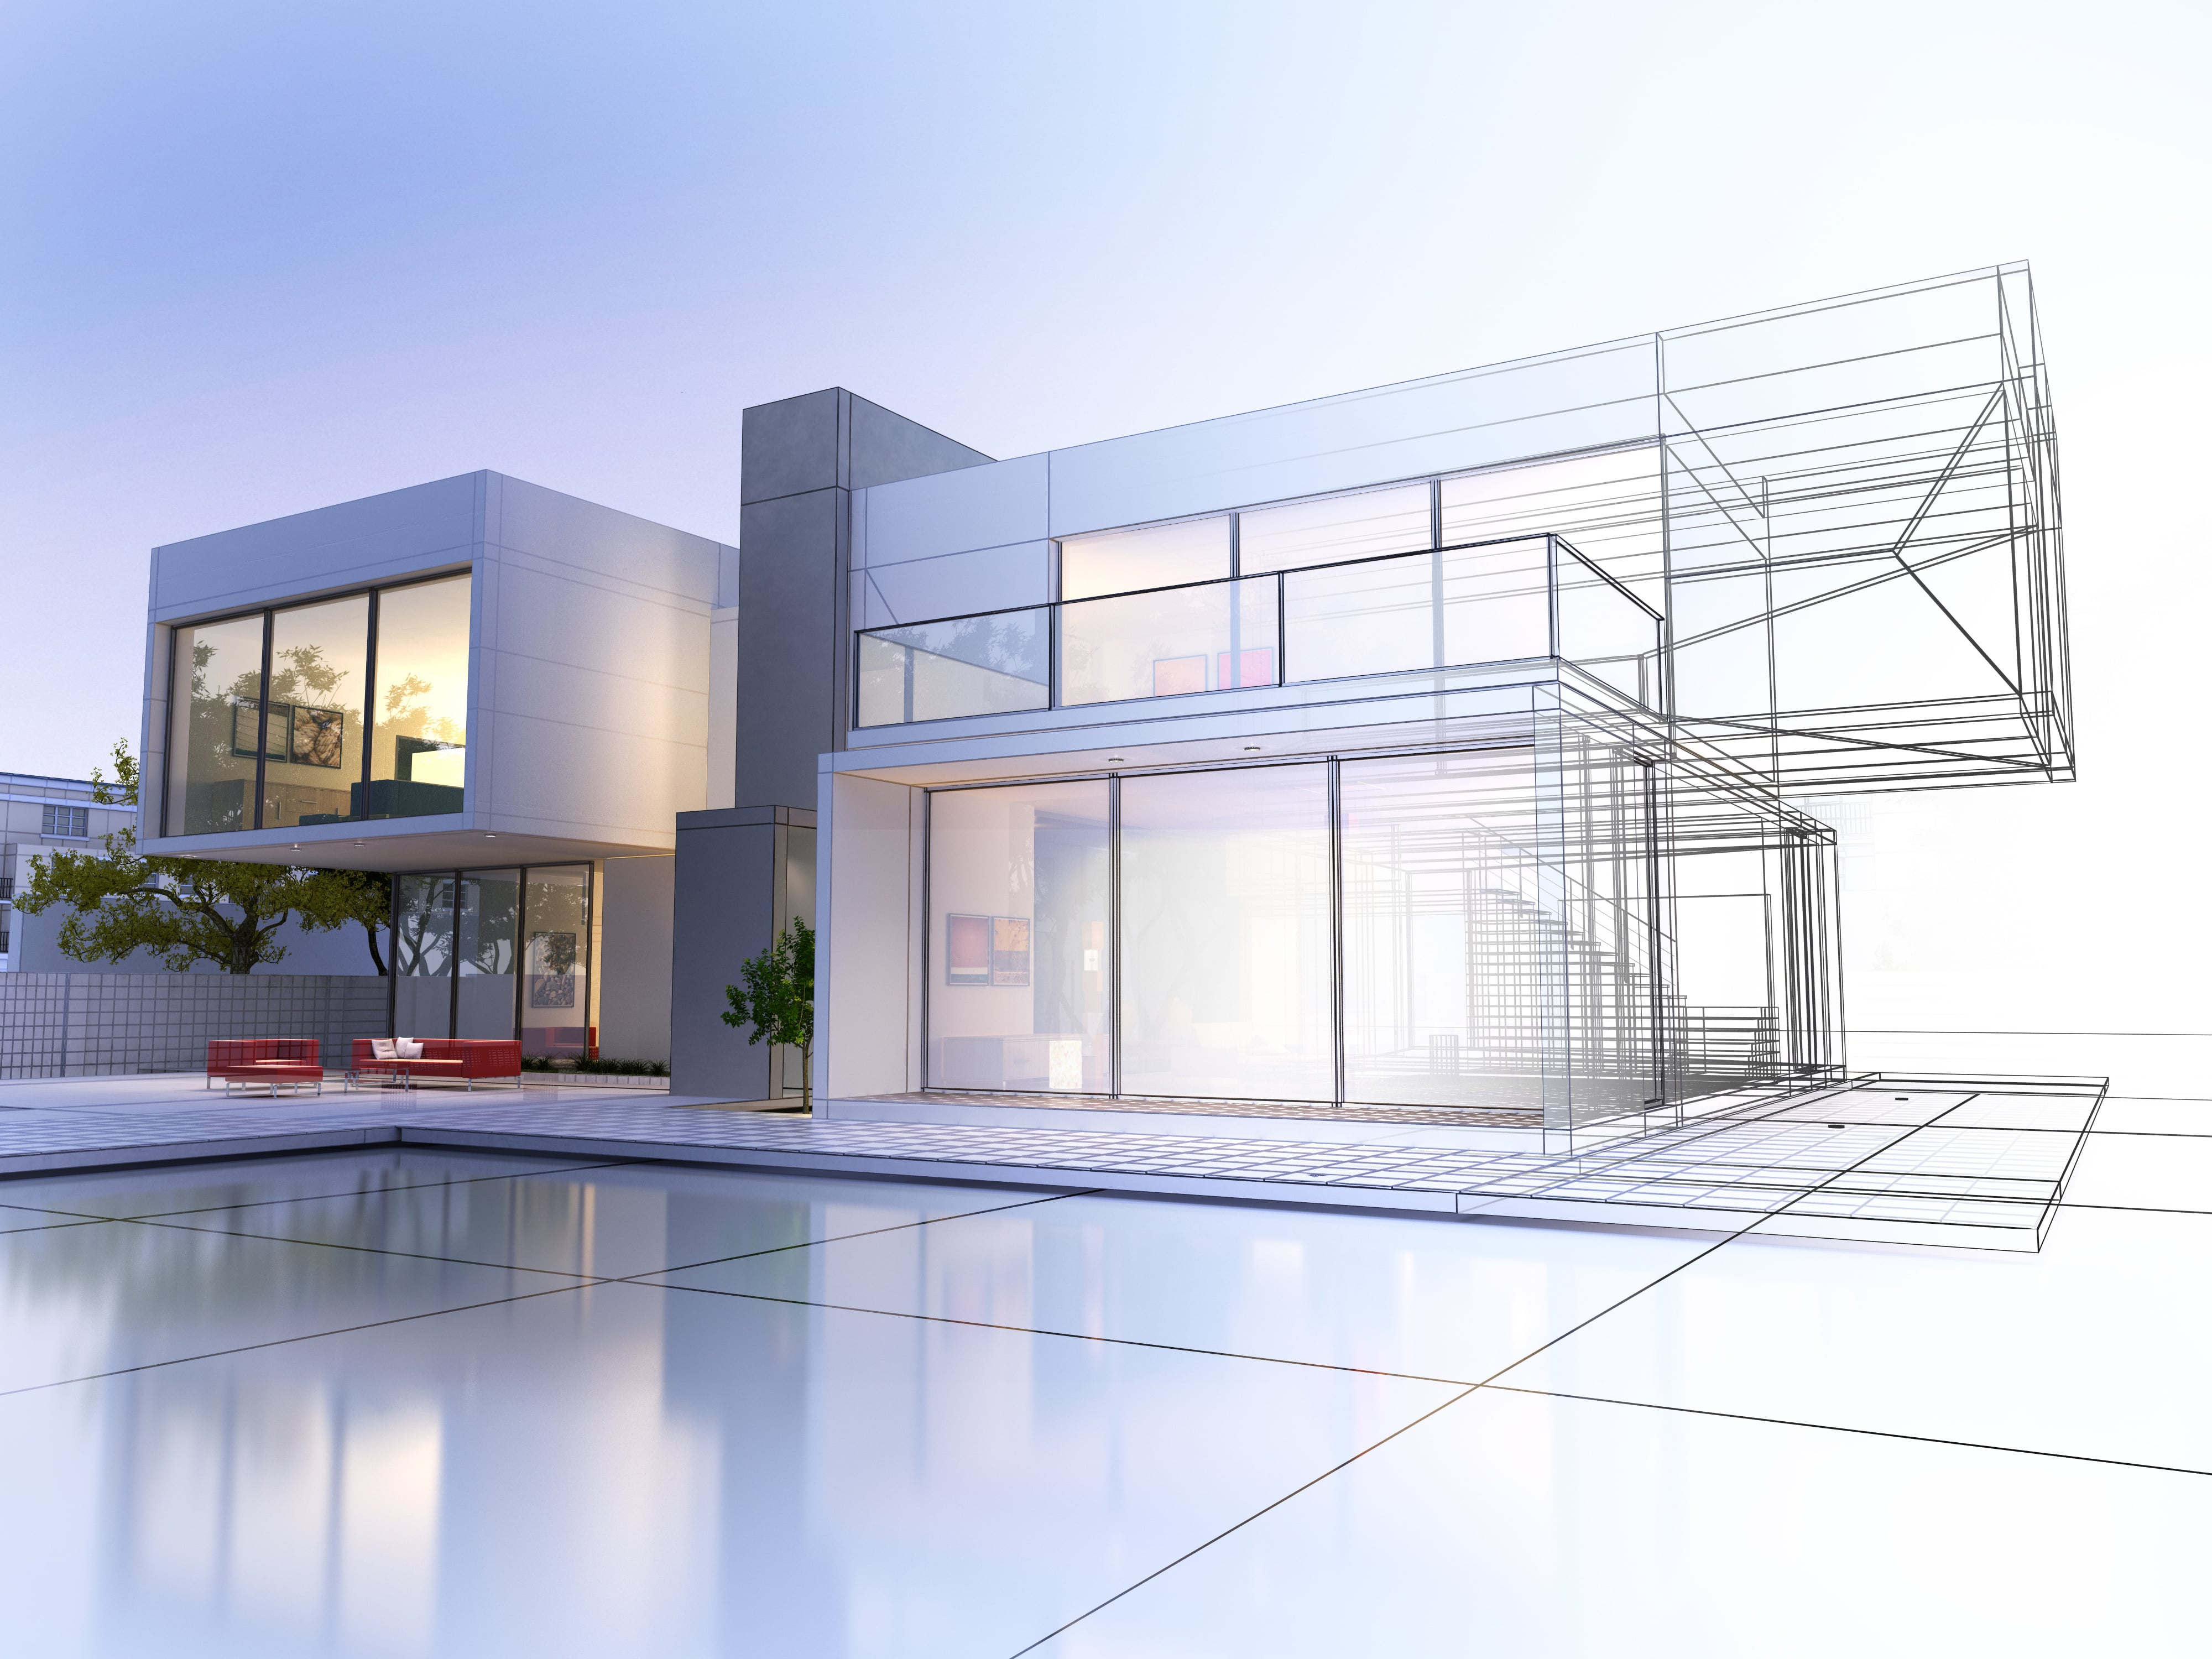 vection mindesk rendering 3d cad real-time e fotorealistico